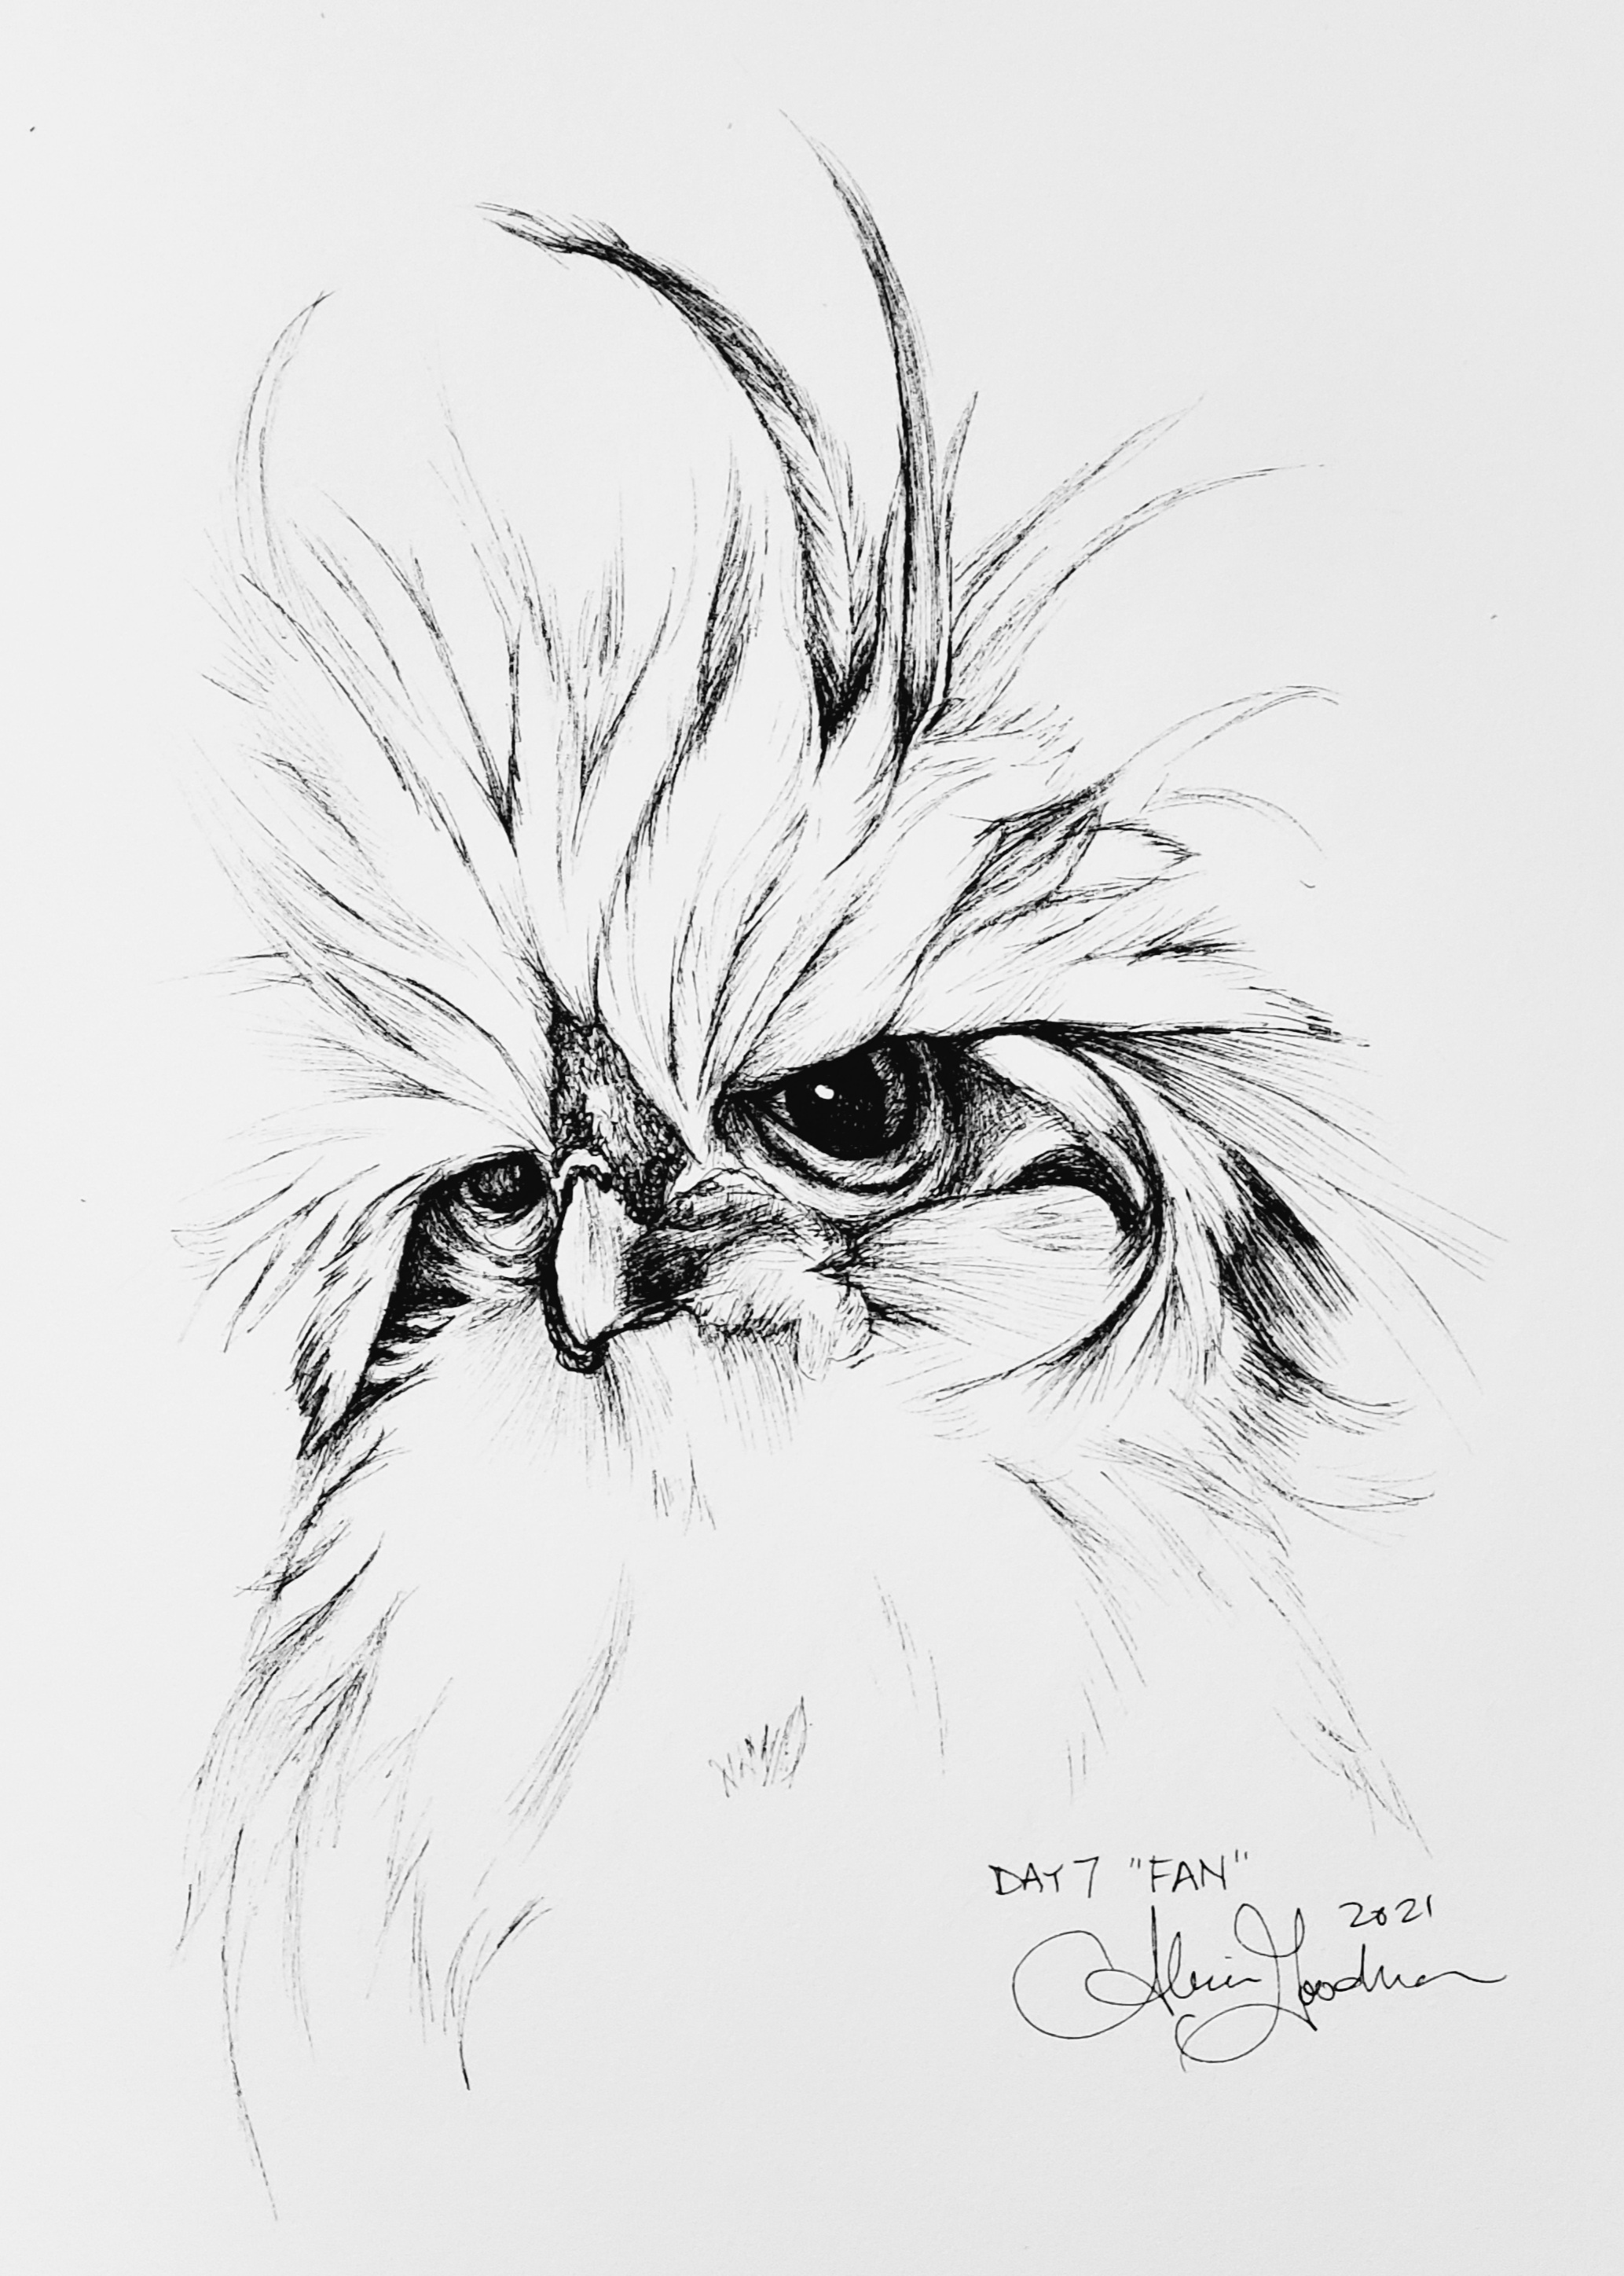 Inktober Day 7 Fan ink drawing of chicken with crazy feathers by alecia goodman copyright 2021 to present